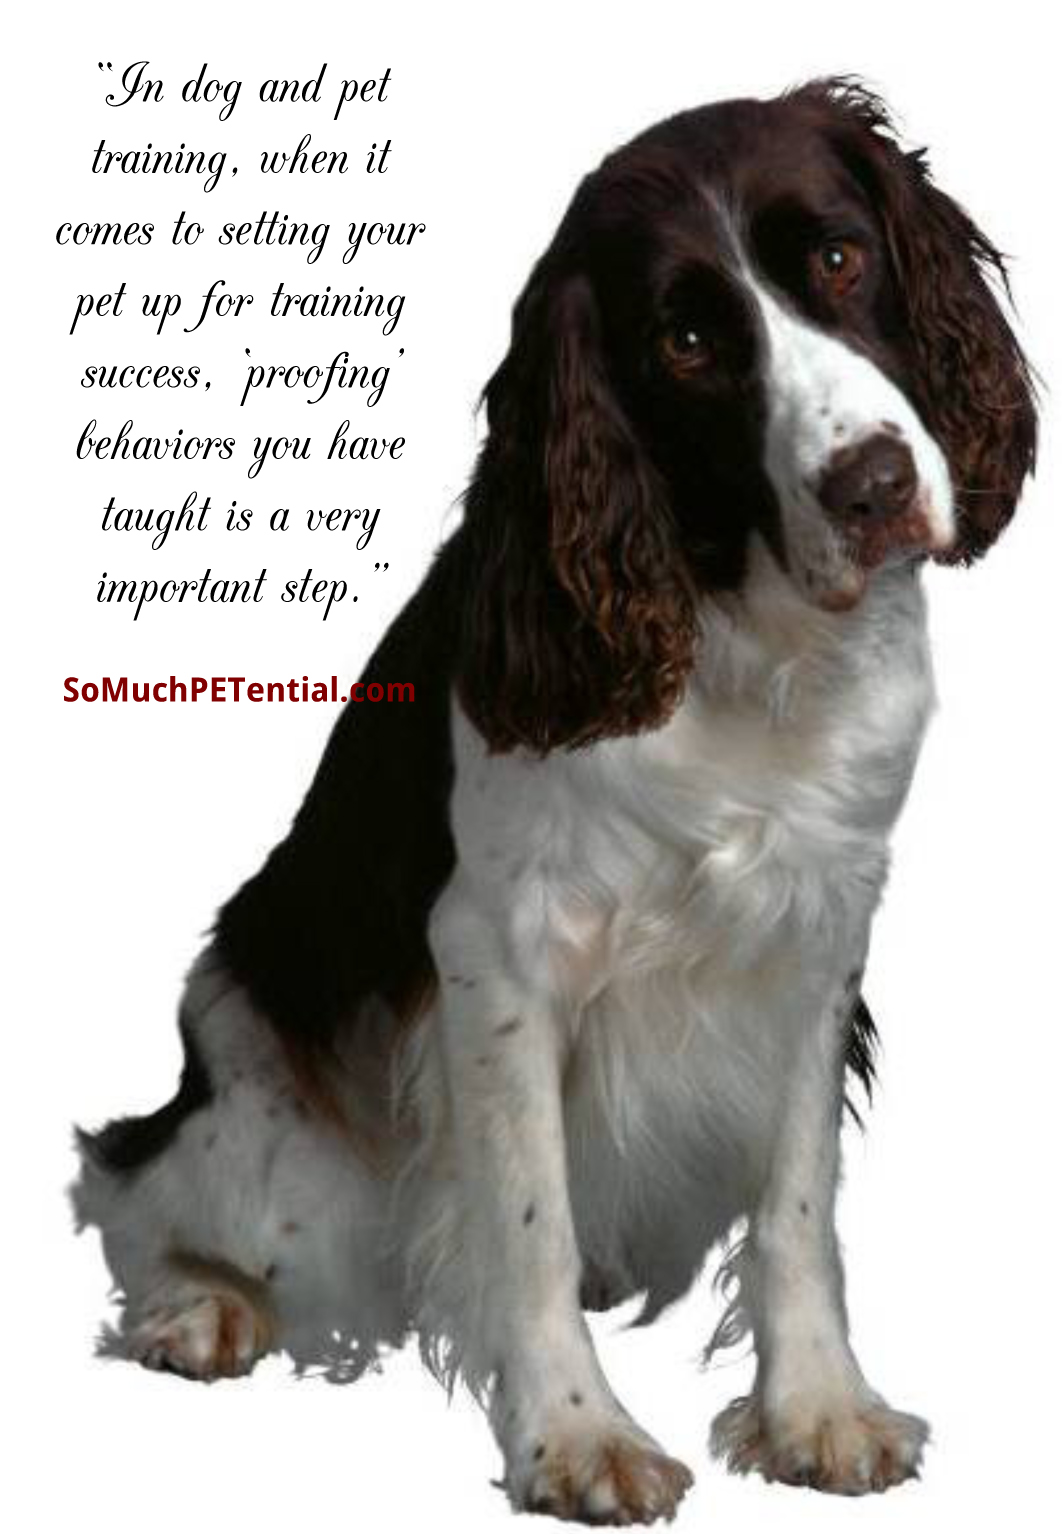 Proofing Behavior in Dog & Pet Training